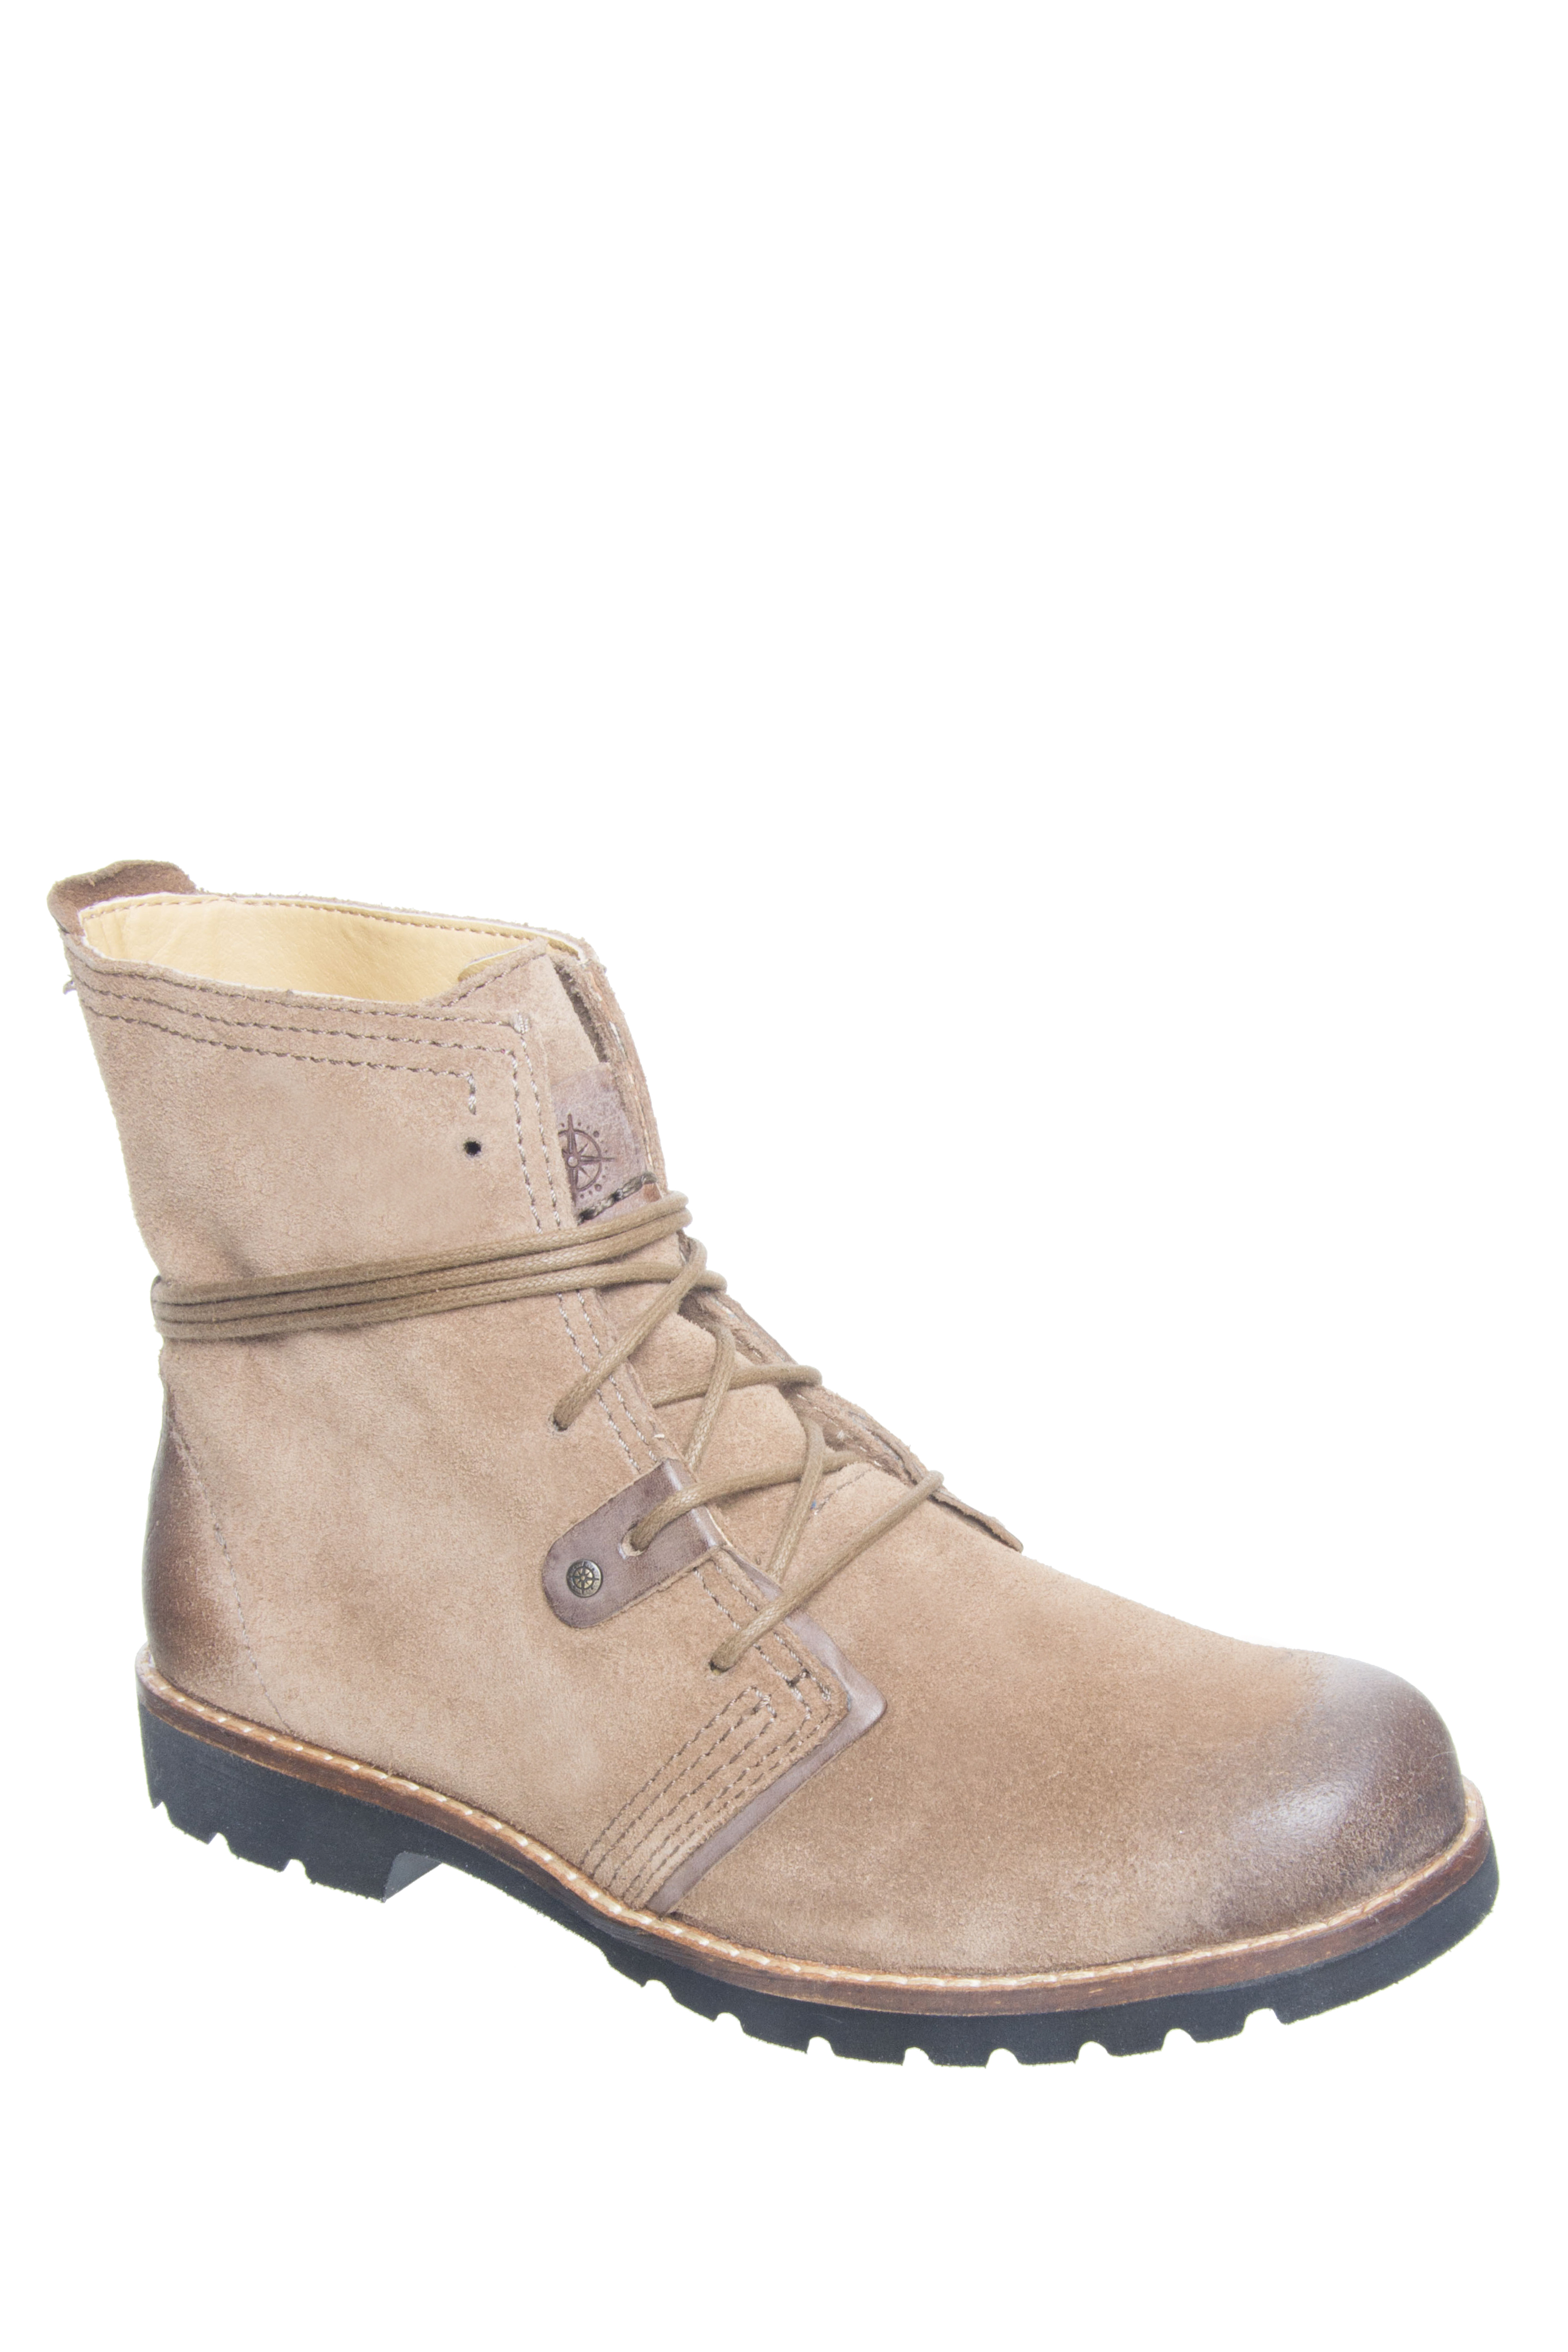 Bussola Keely Lace Up Boots - Fossil